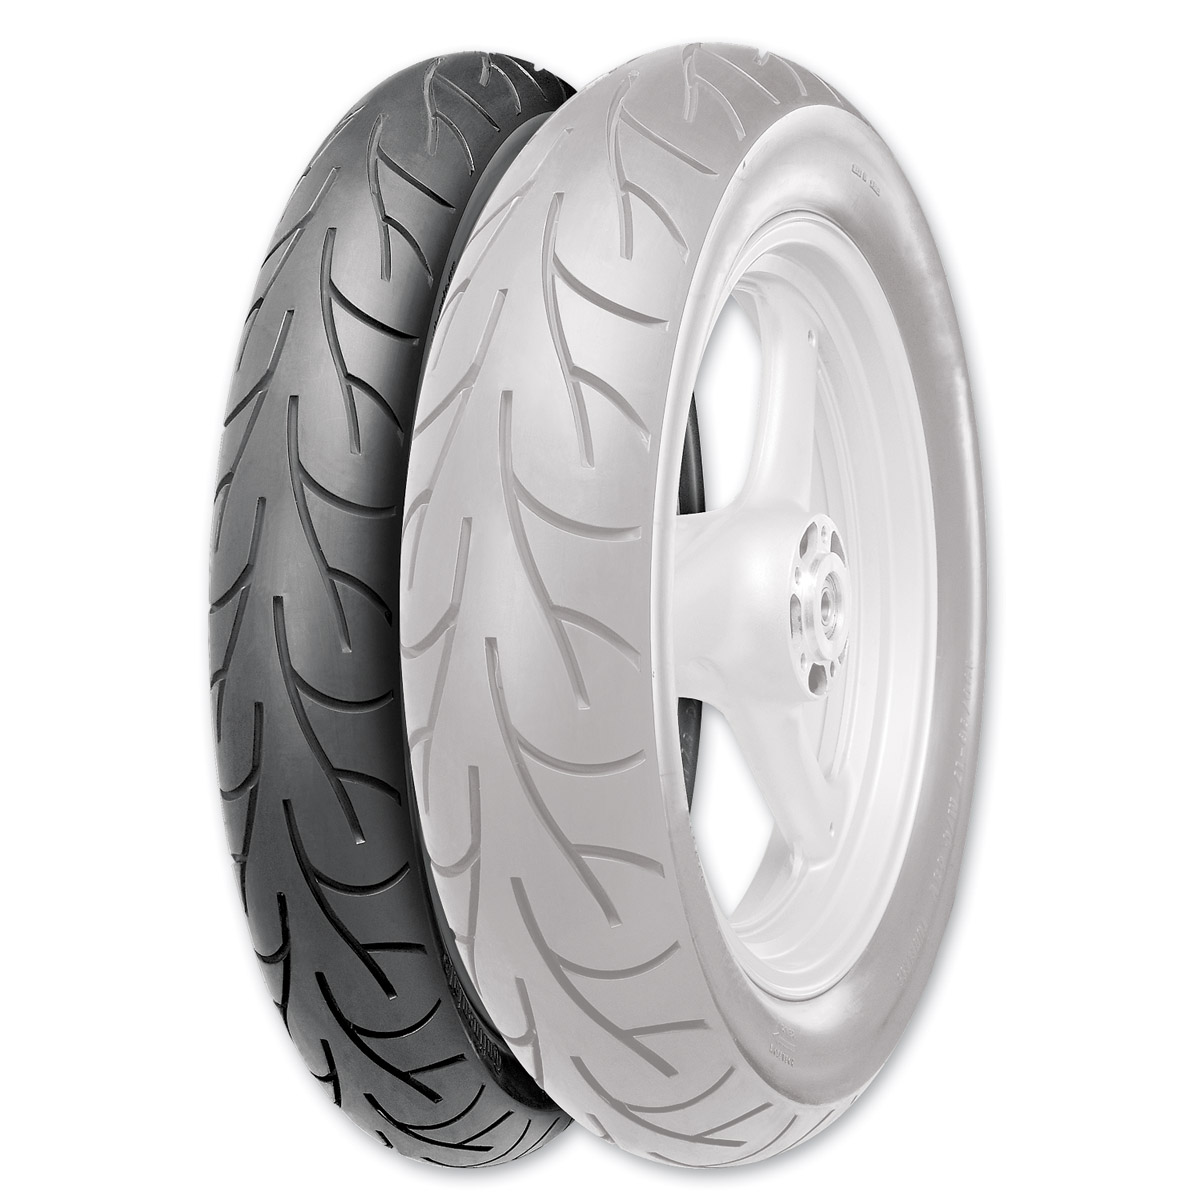 Continental Go 3.25B19 Front Tire